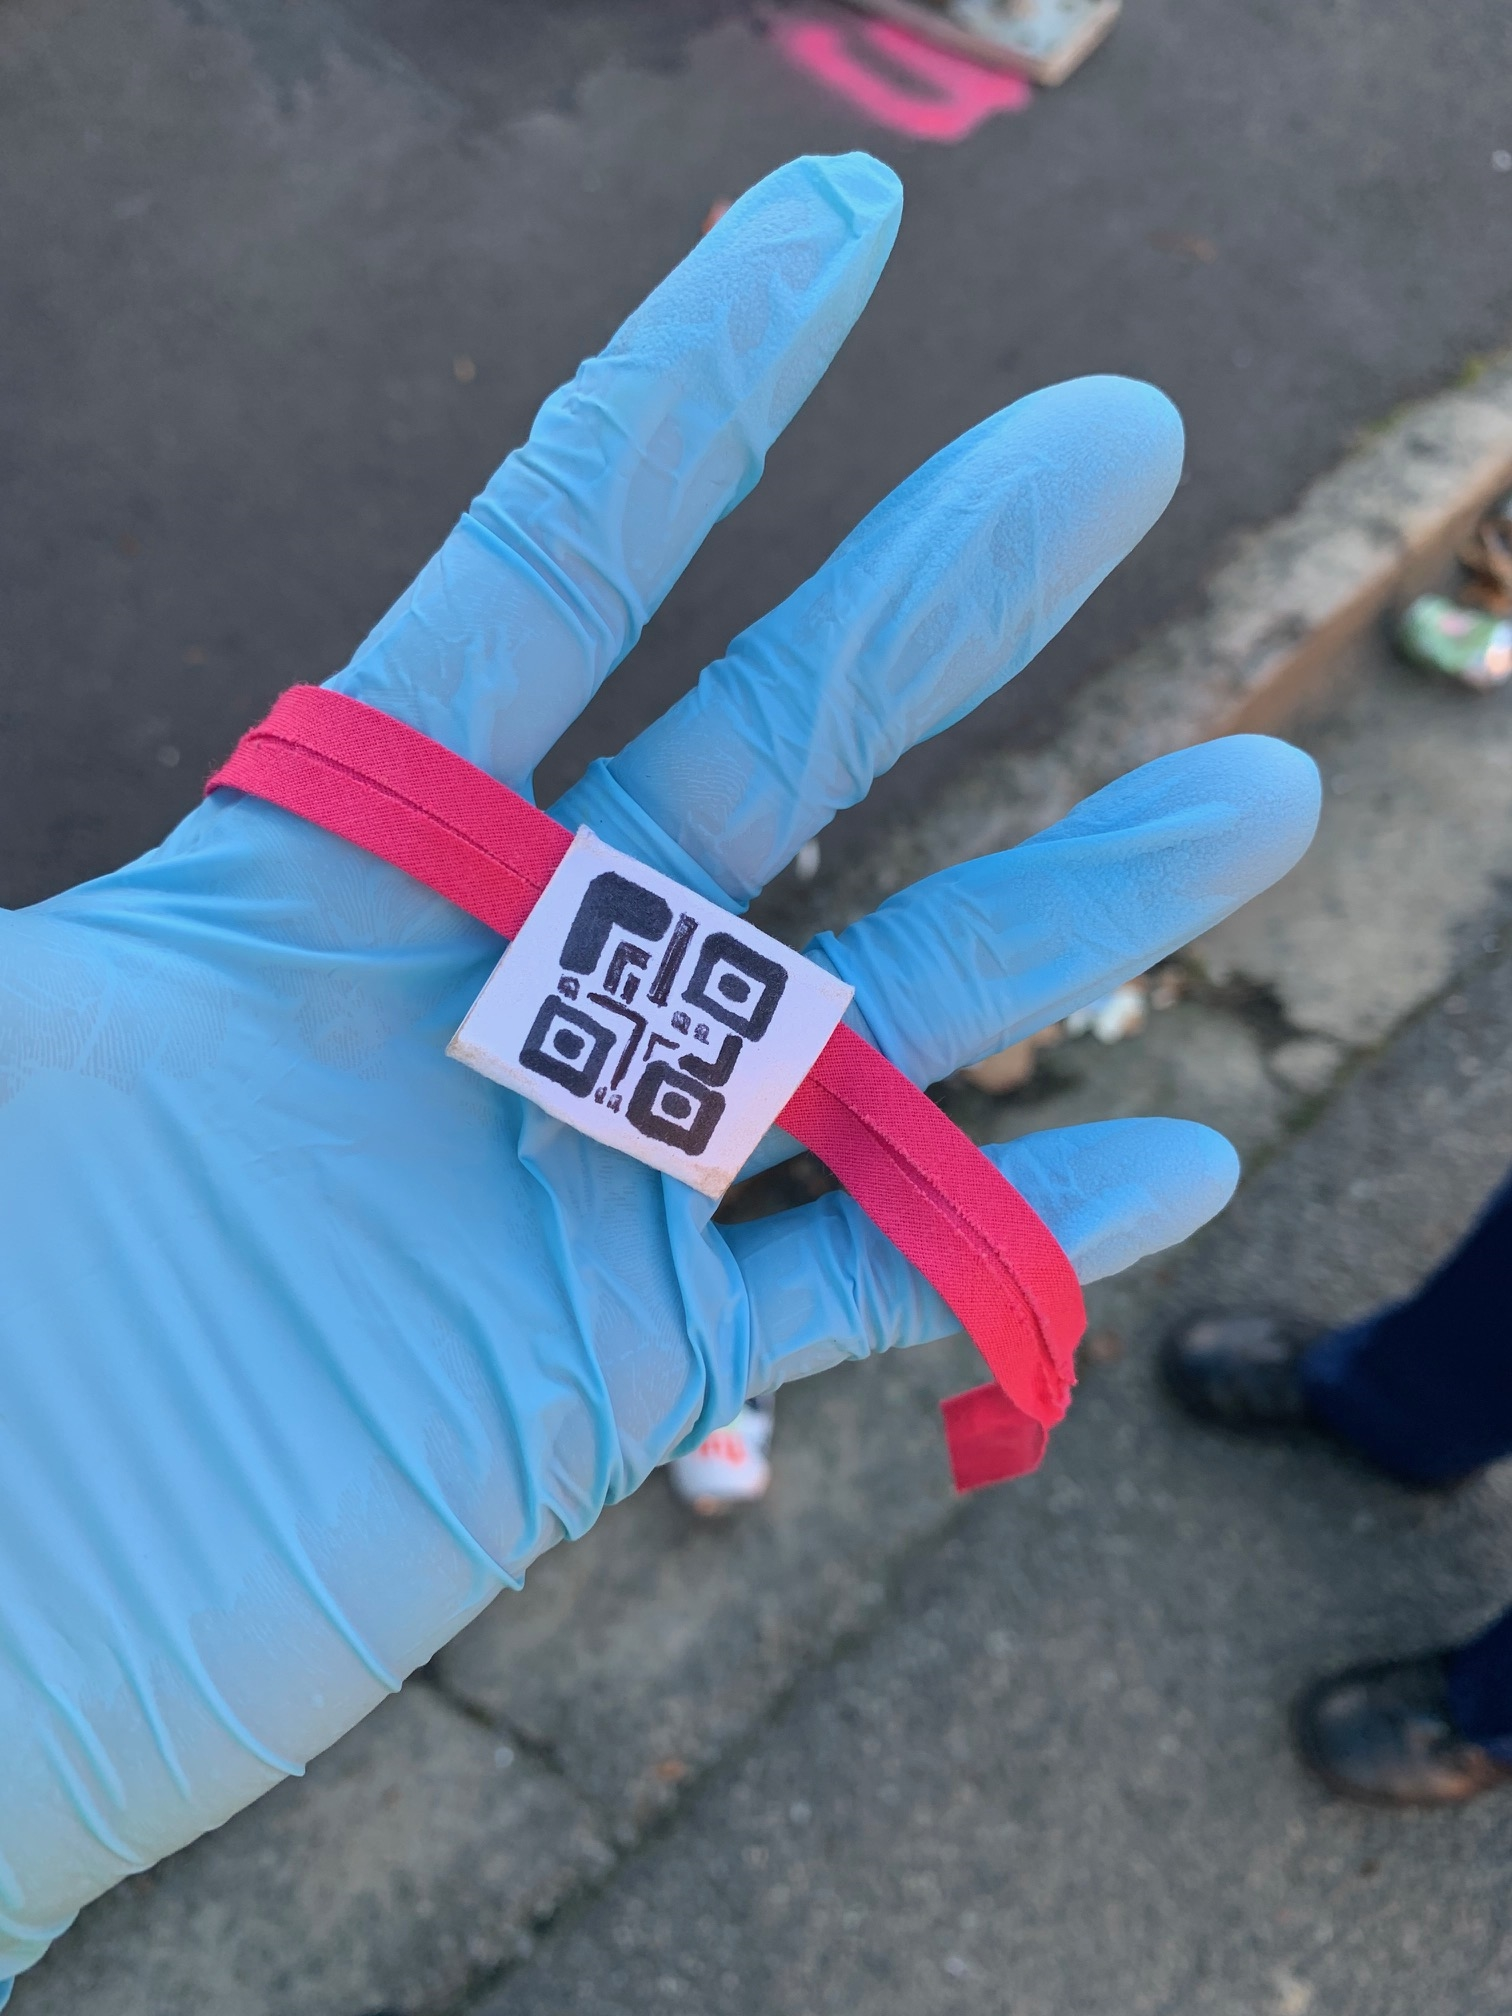 One of the fake bands used in an attempt to get into Hyde St. Photo: Supplied